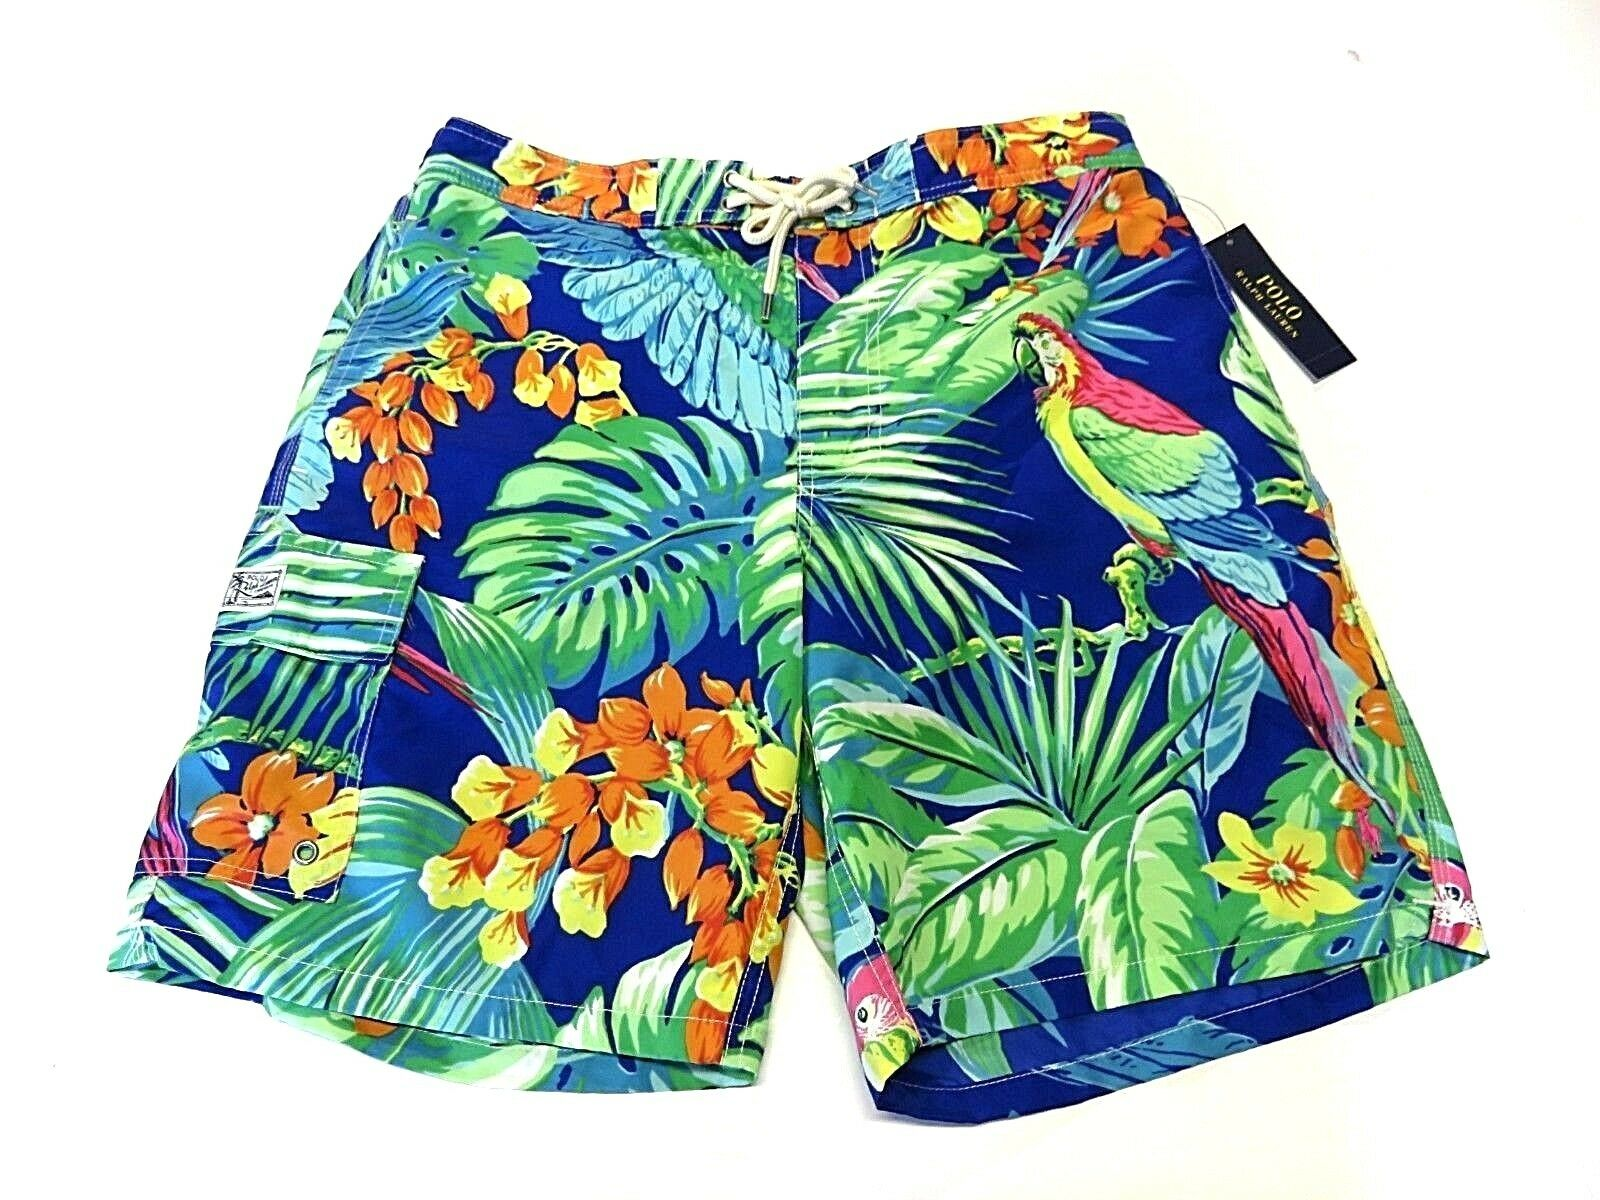 NWT Polo By Ralph Lauren Multi-colord Tropical Swim Trunks Adult Men's Size L